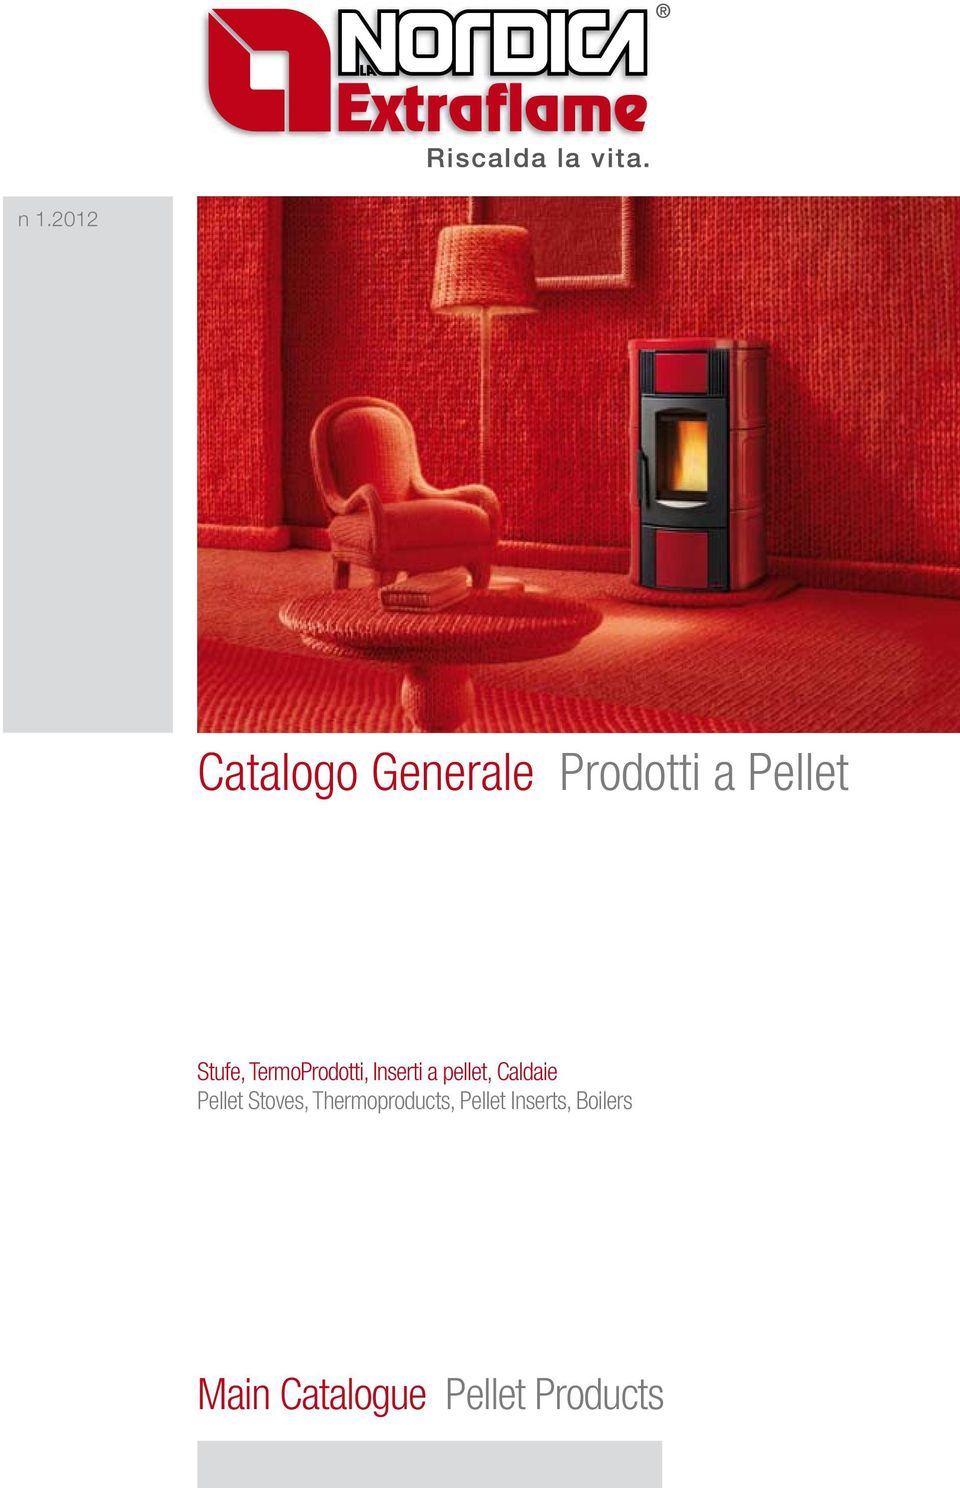 Caldaie Pellet Stoves, Thermoproducts,